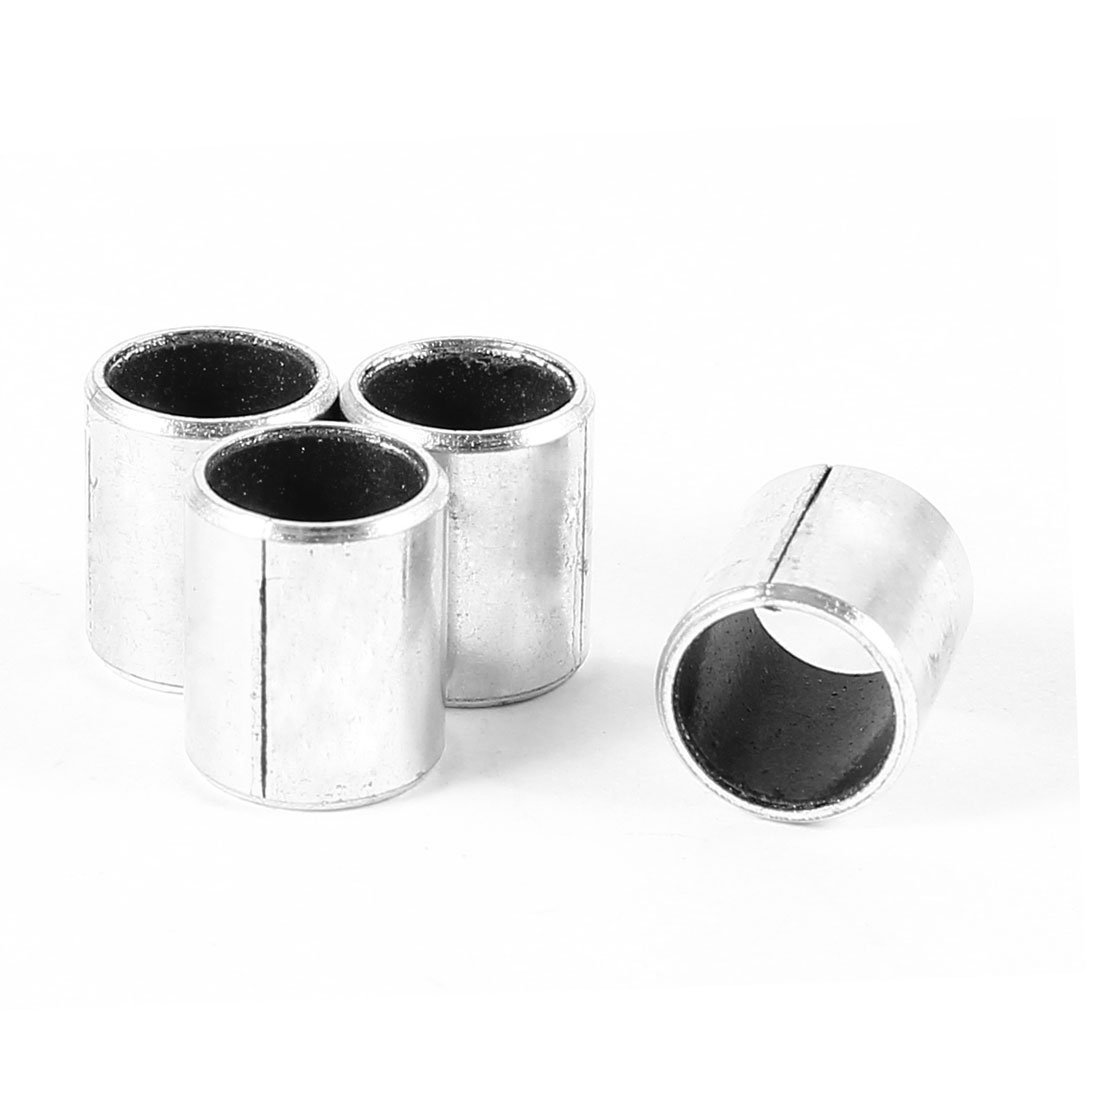 sourcingmap 4 x 12mm length x 10mm OD x 8mm Bore Silver Tone Plain Sleeve Bearing US-SA-AJD-53324